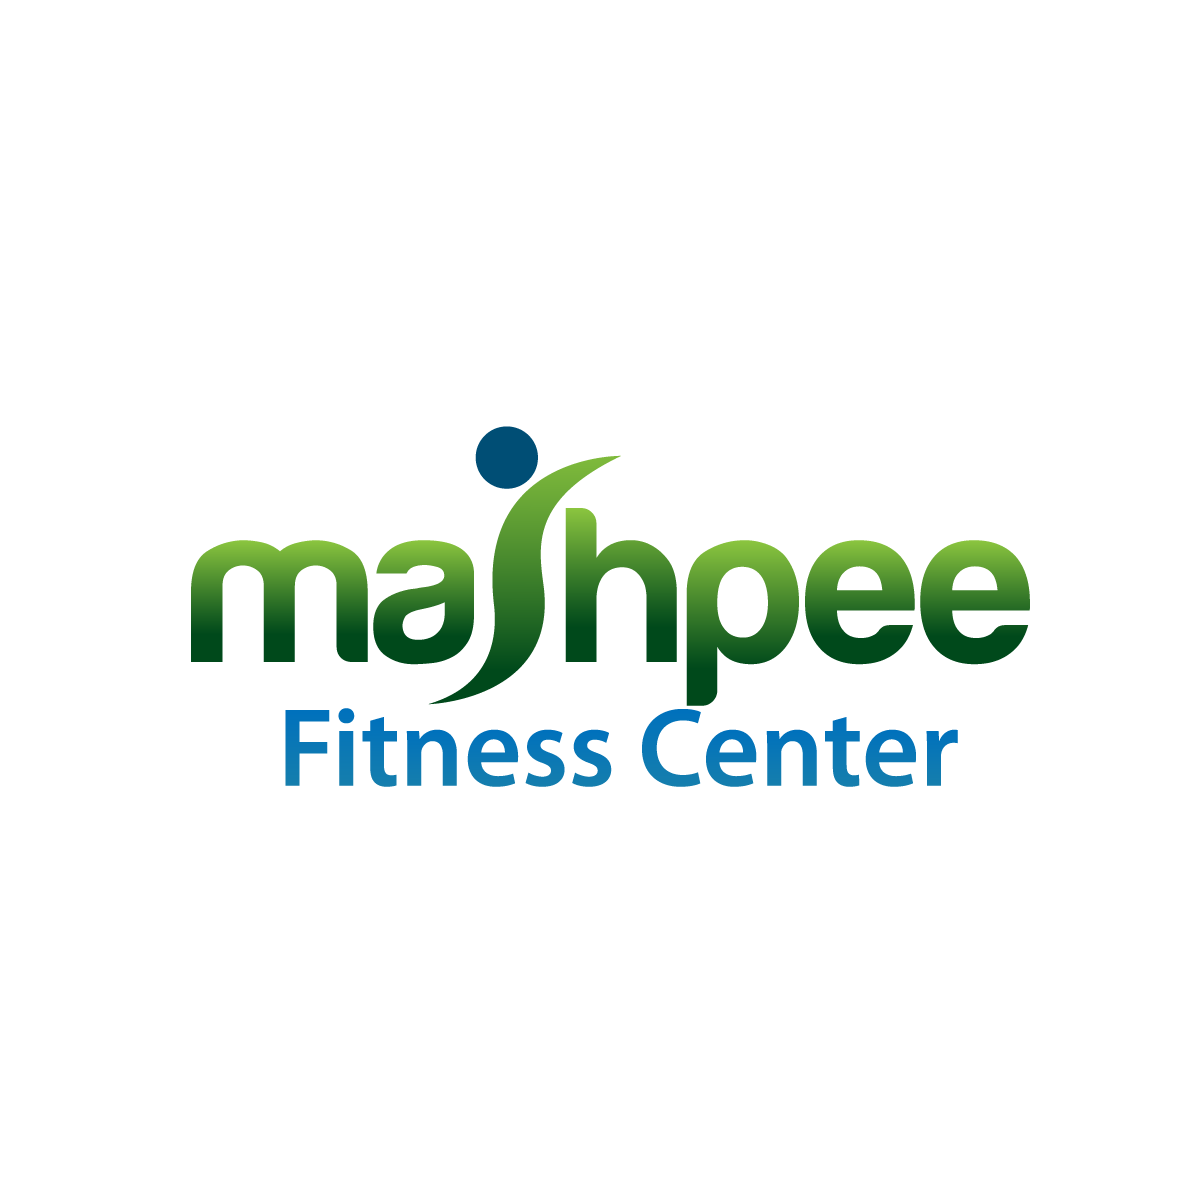 Logo Design by rockin - Entry No. 4 in the Logo Design Contest New Logo Design for Mashpee Fitness Center.